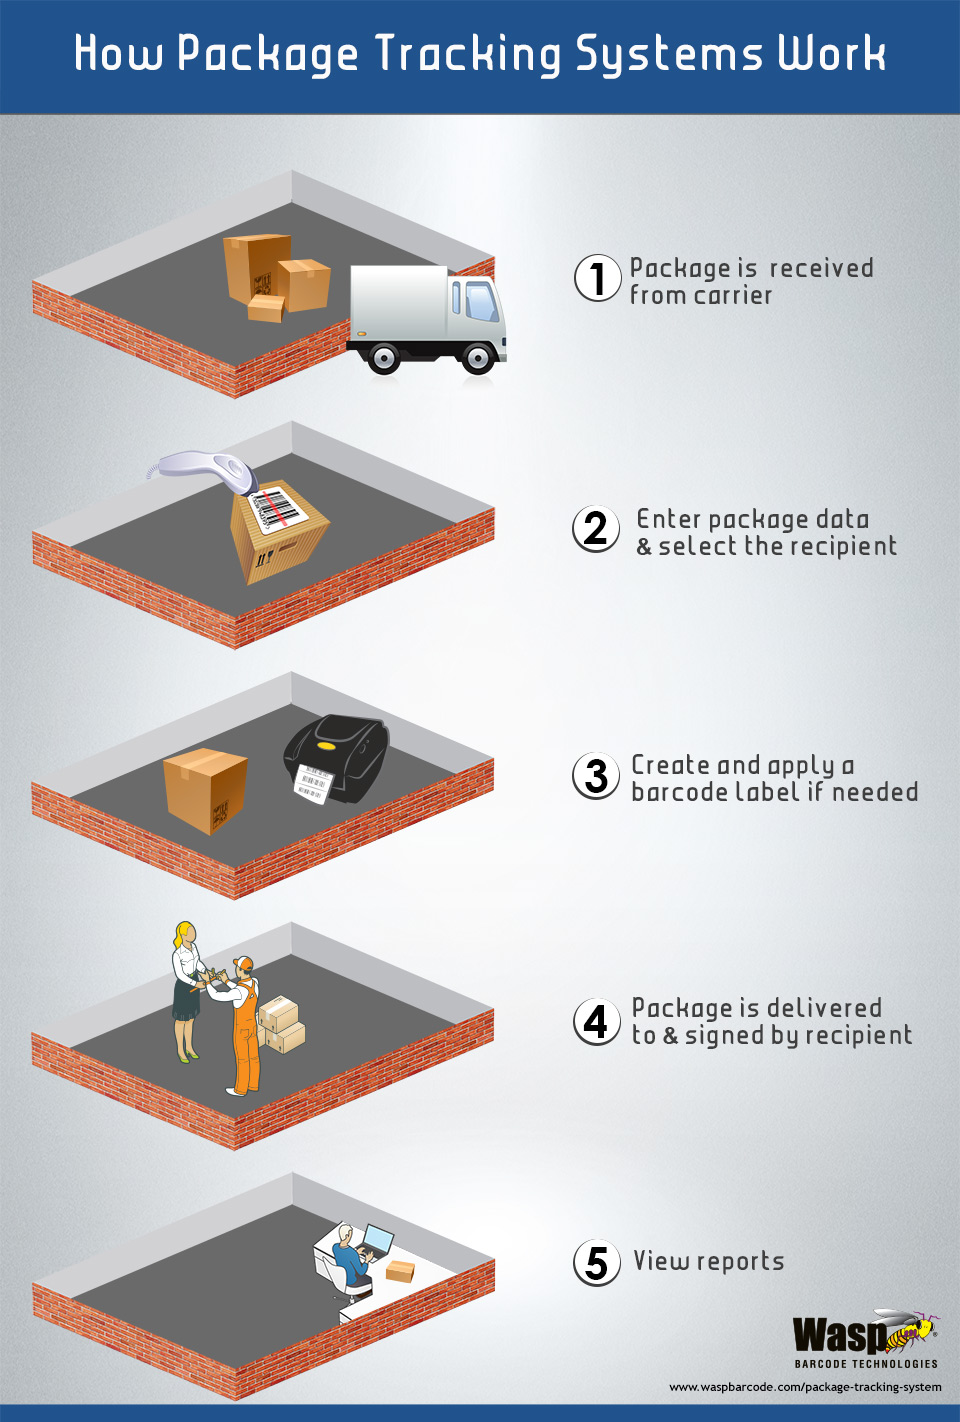 How Package Tracking Systems Work